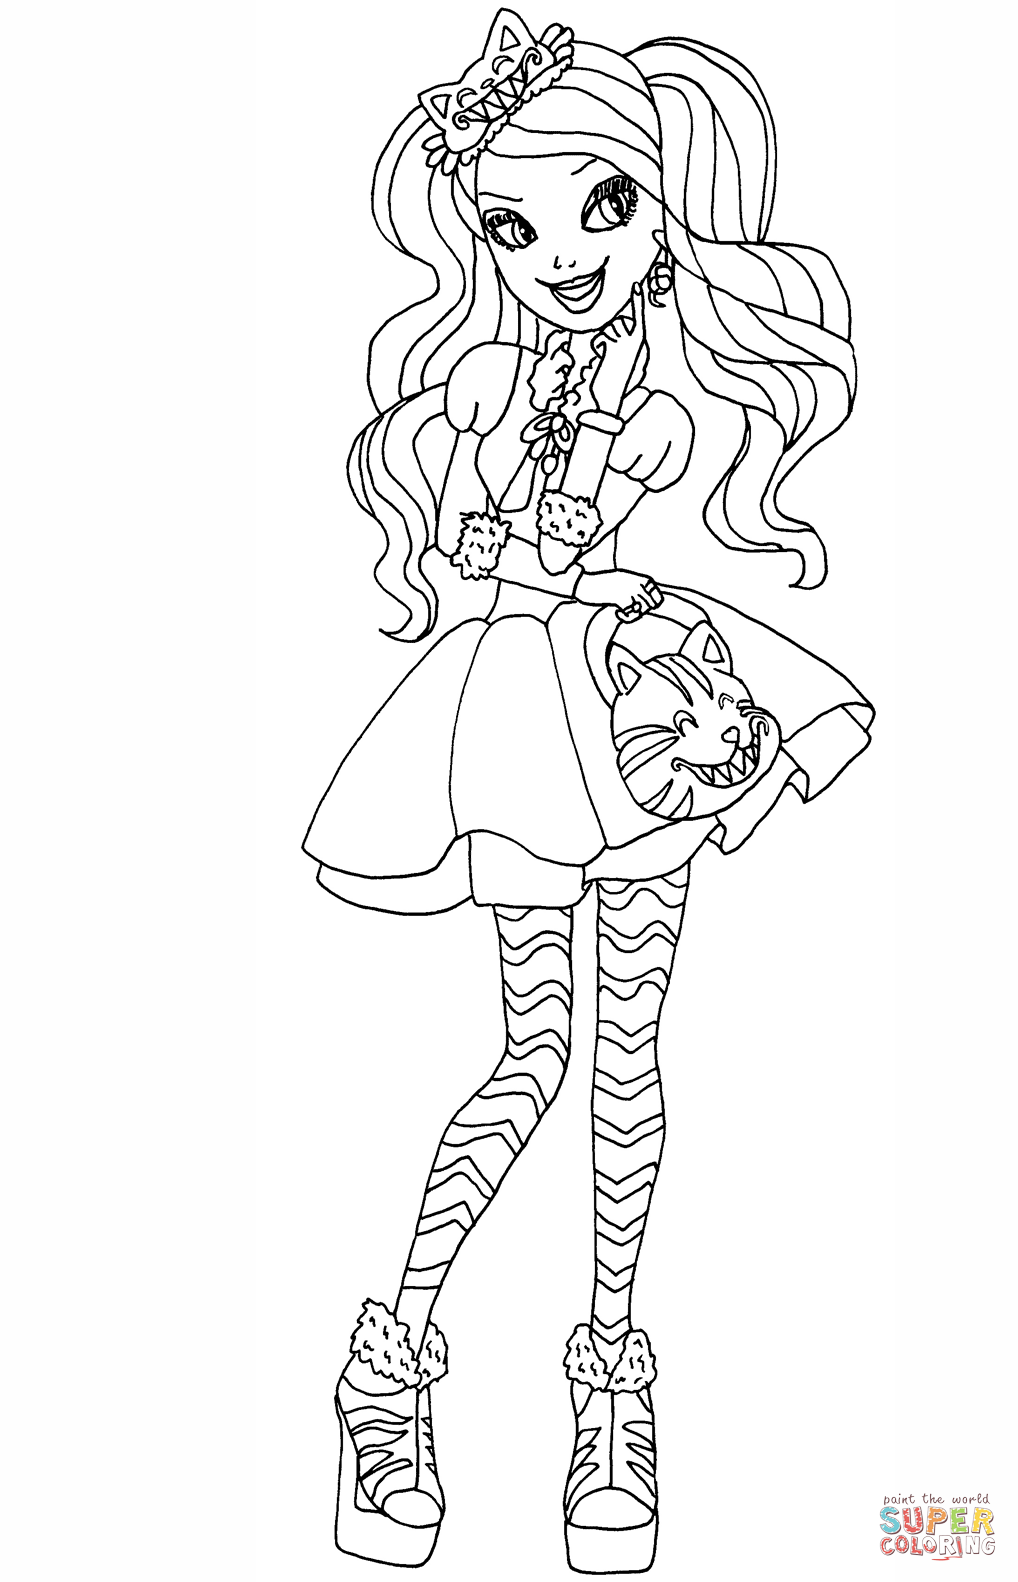 Monster High Ausmalbilder : Resultado De Imagem Para Ever After High Ginger Para Colorir Todas